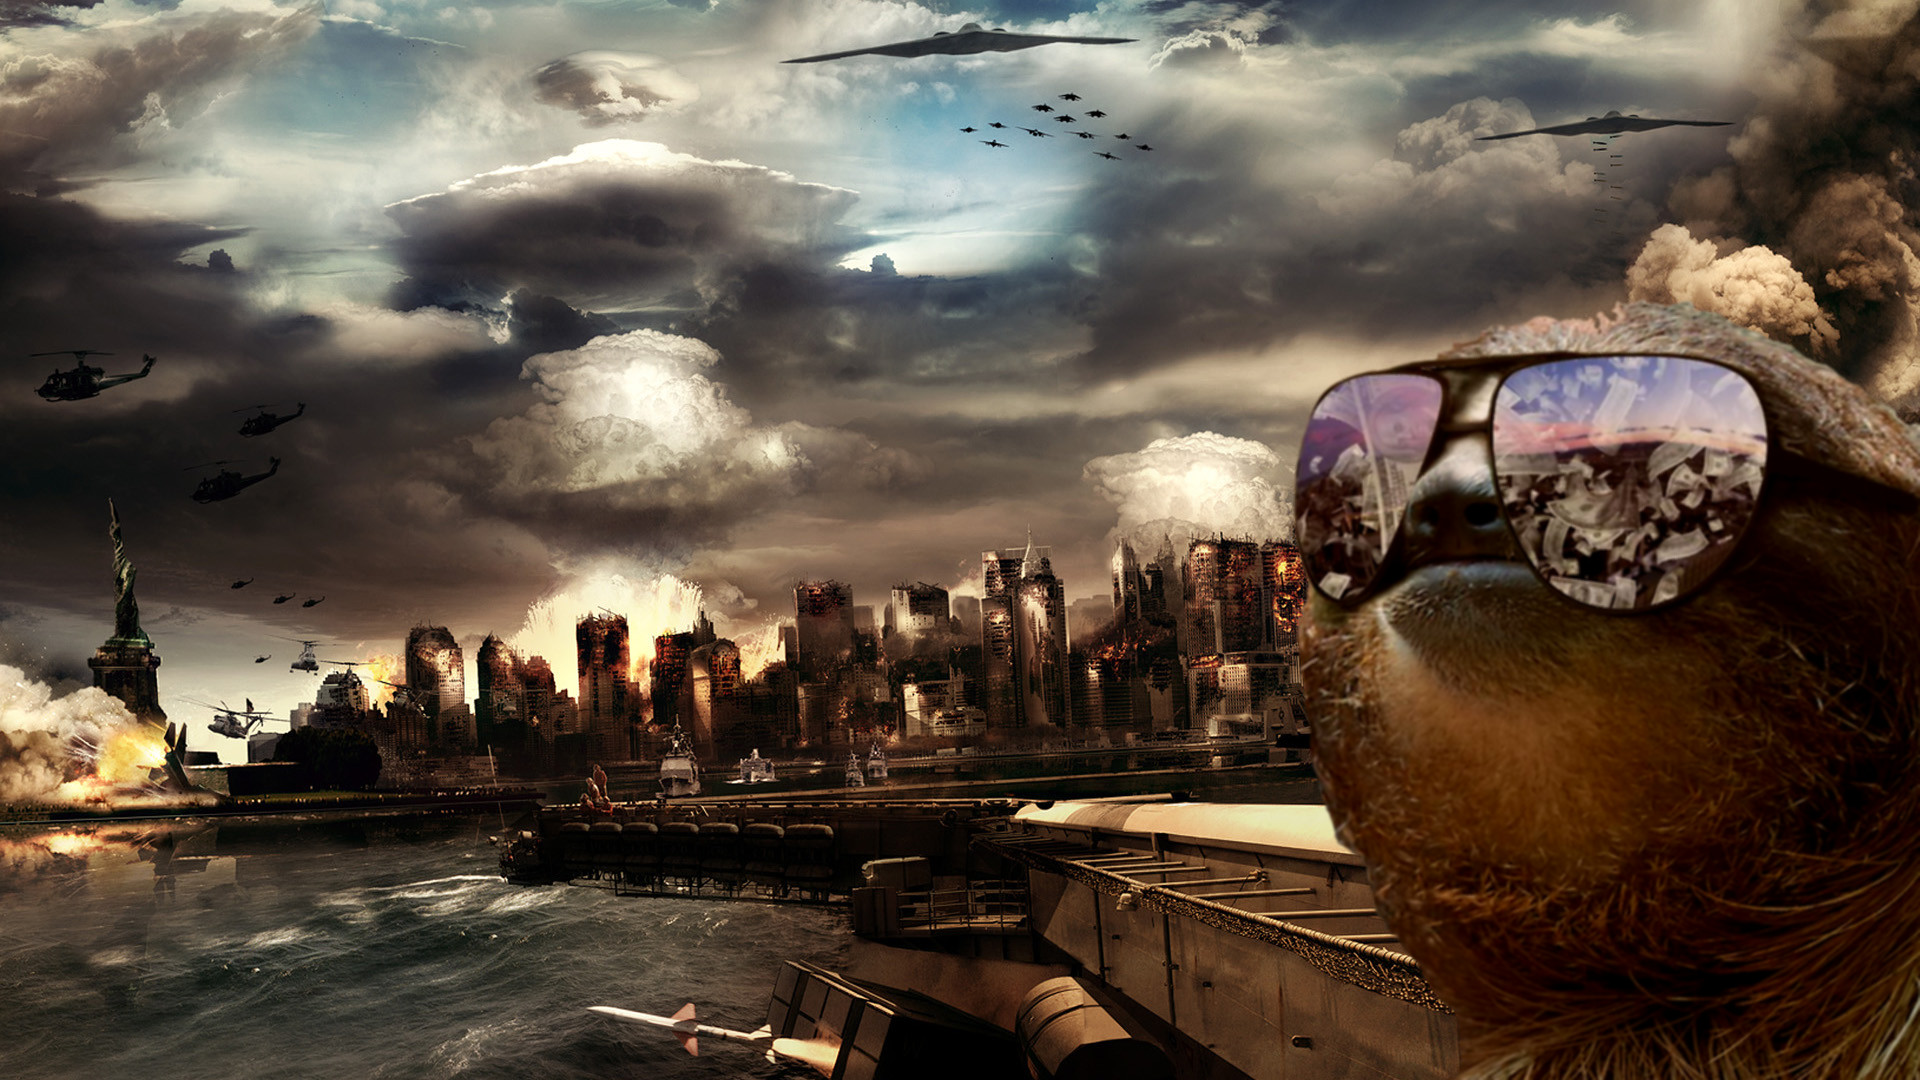 1920x1080 ... backgrounds for sloth fire background www 8backgrounds com ...